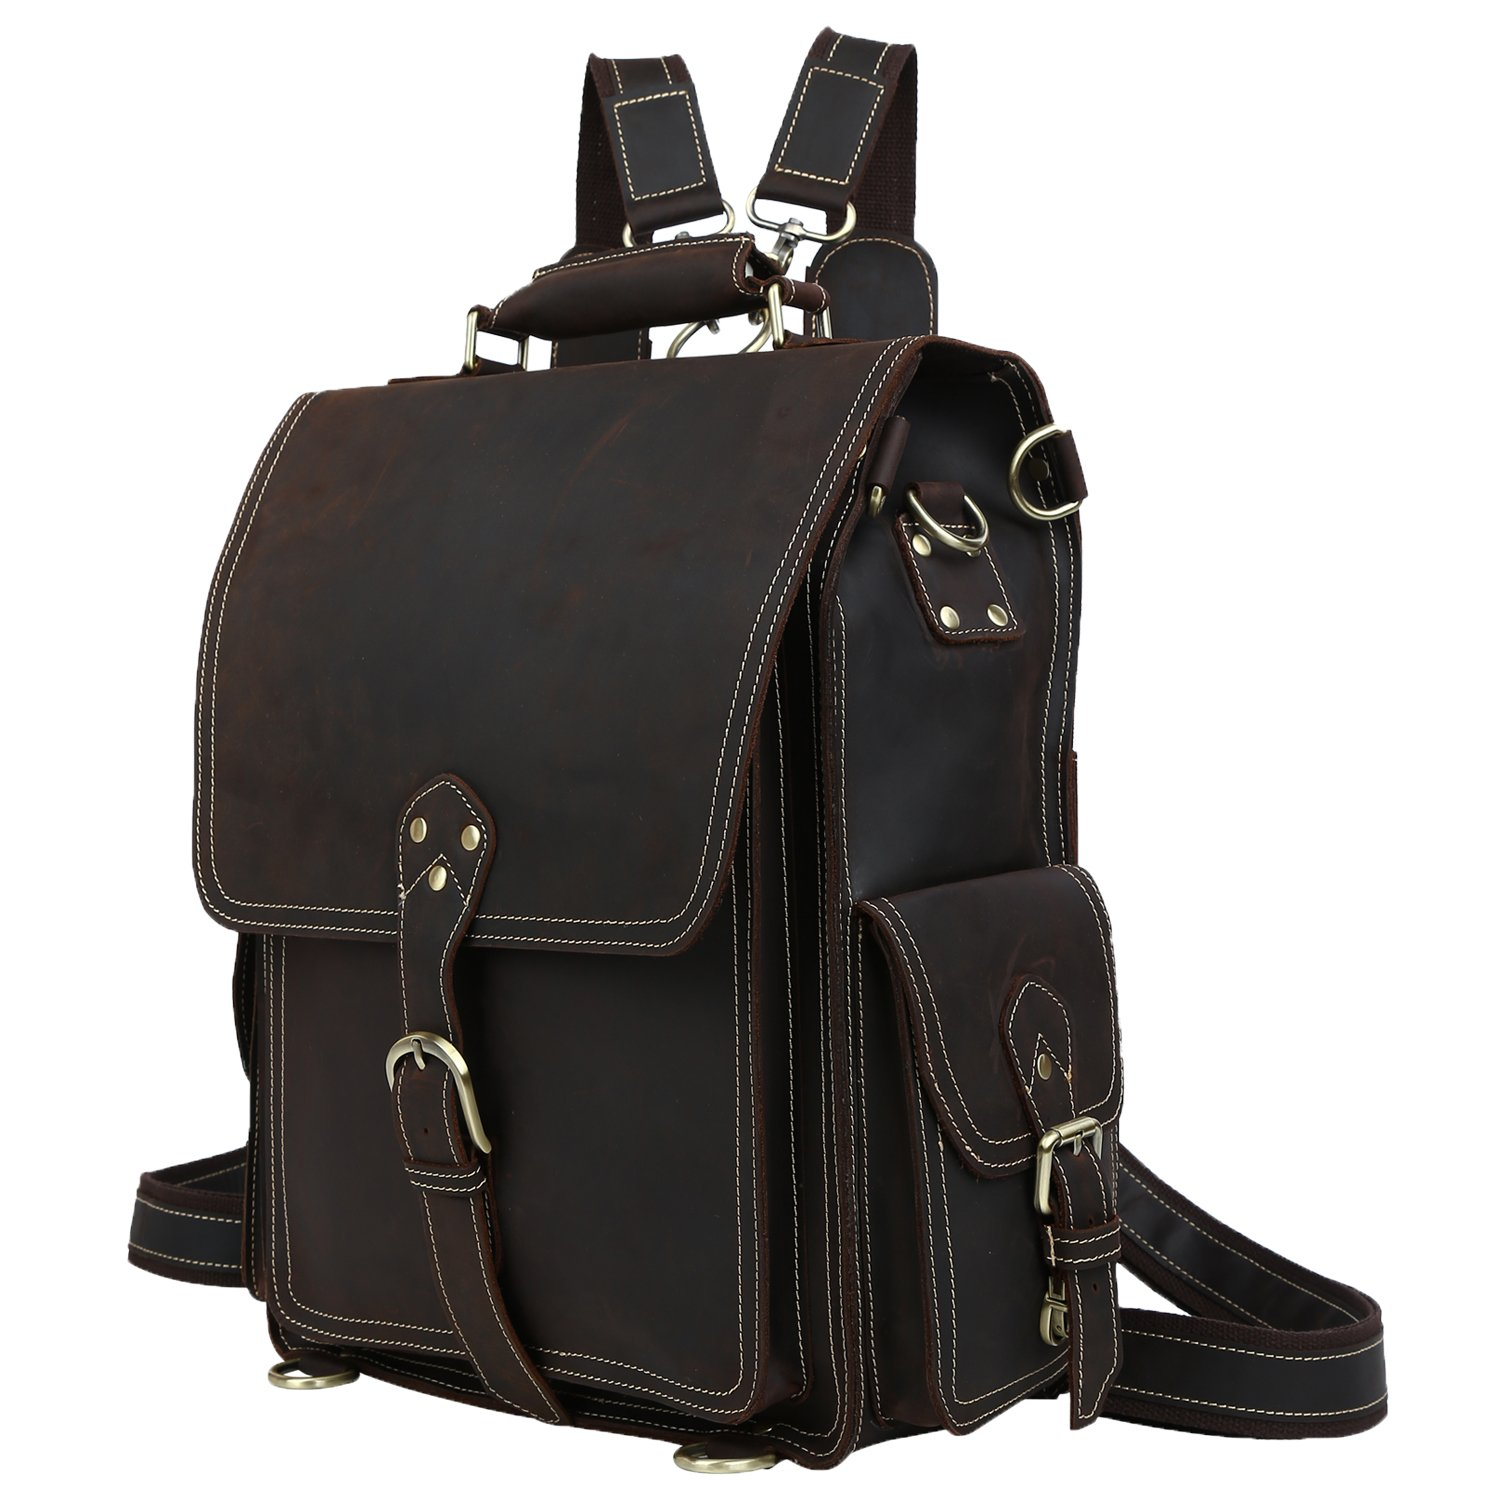 Polare Men's Vintage Full Grain Leather Satchel Backpack Shoulder Bag Messenger Bag